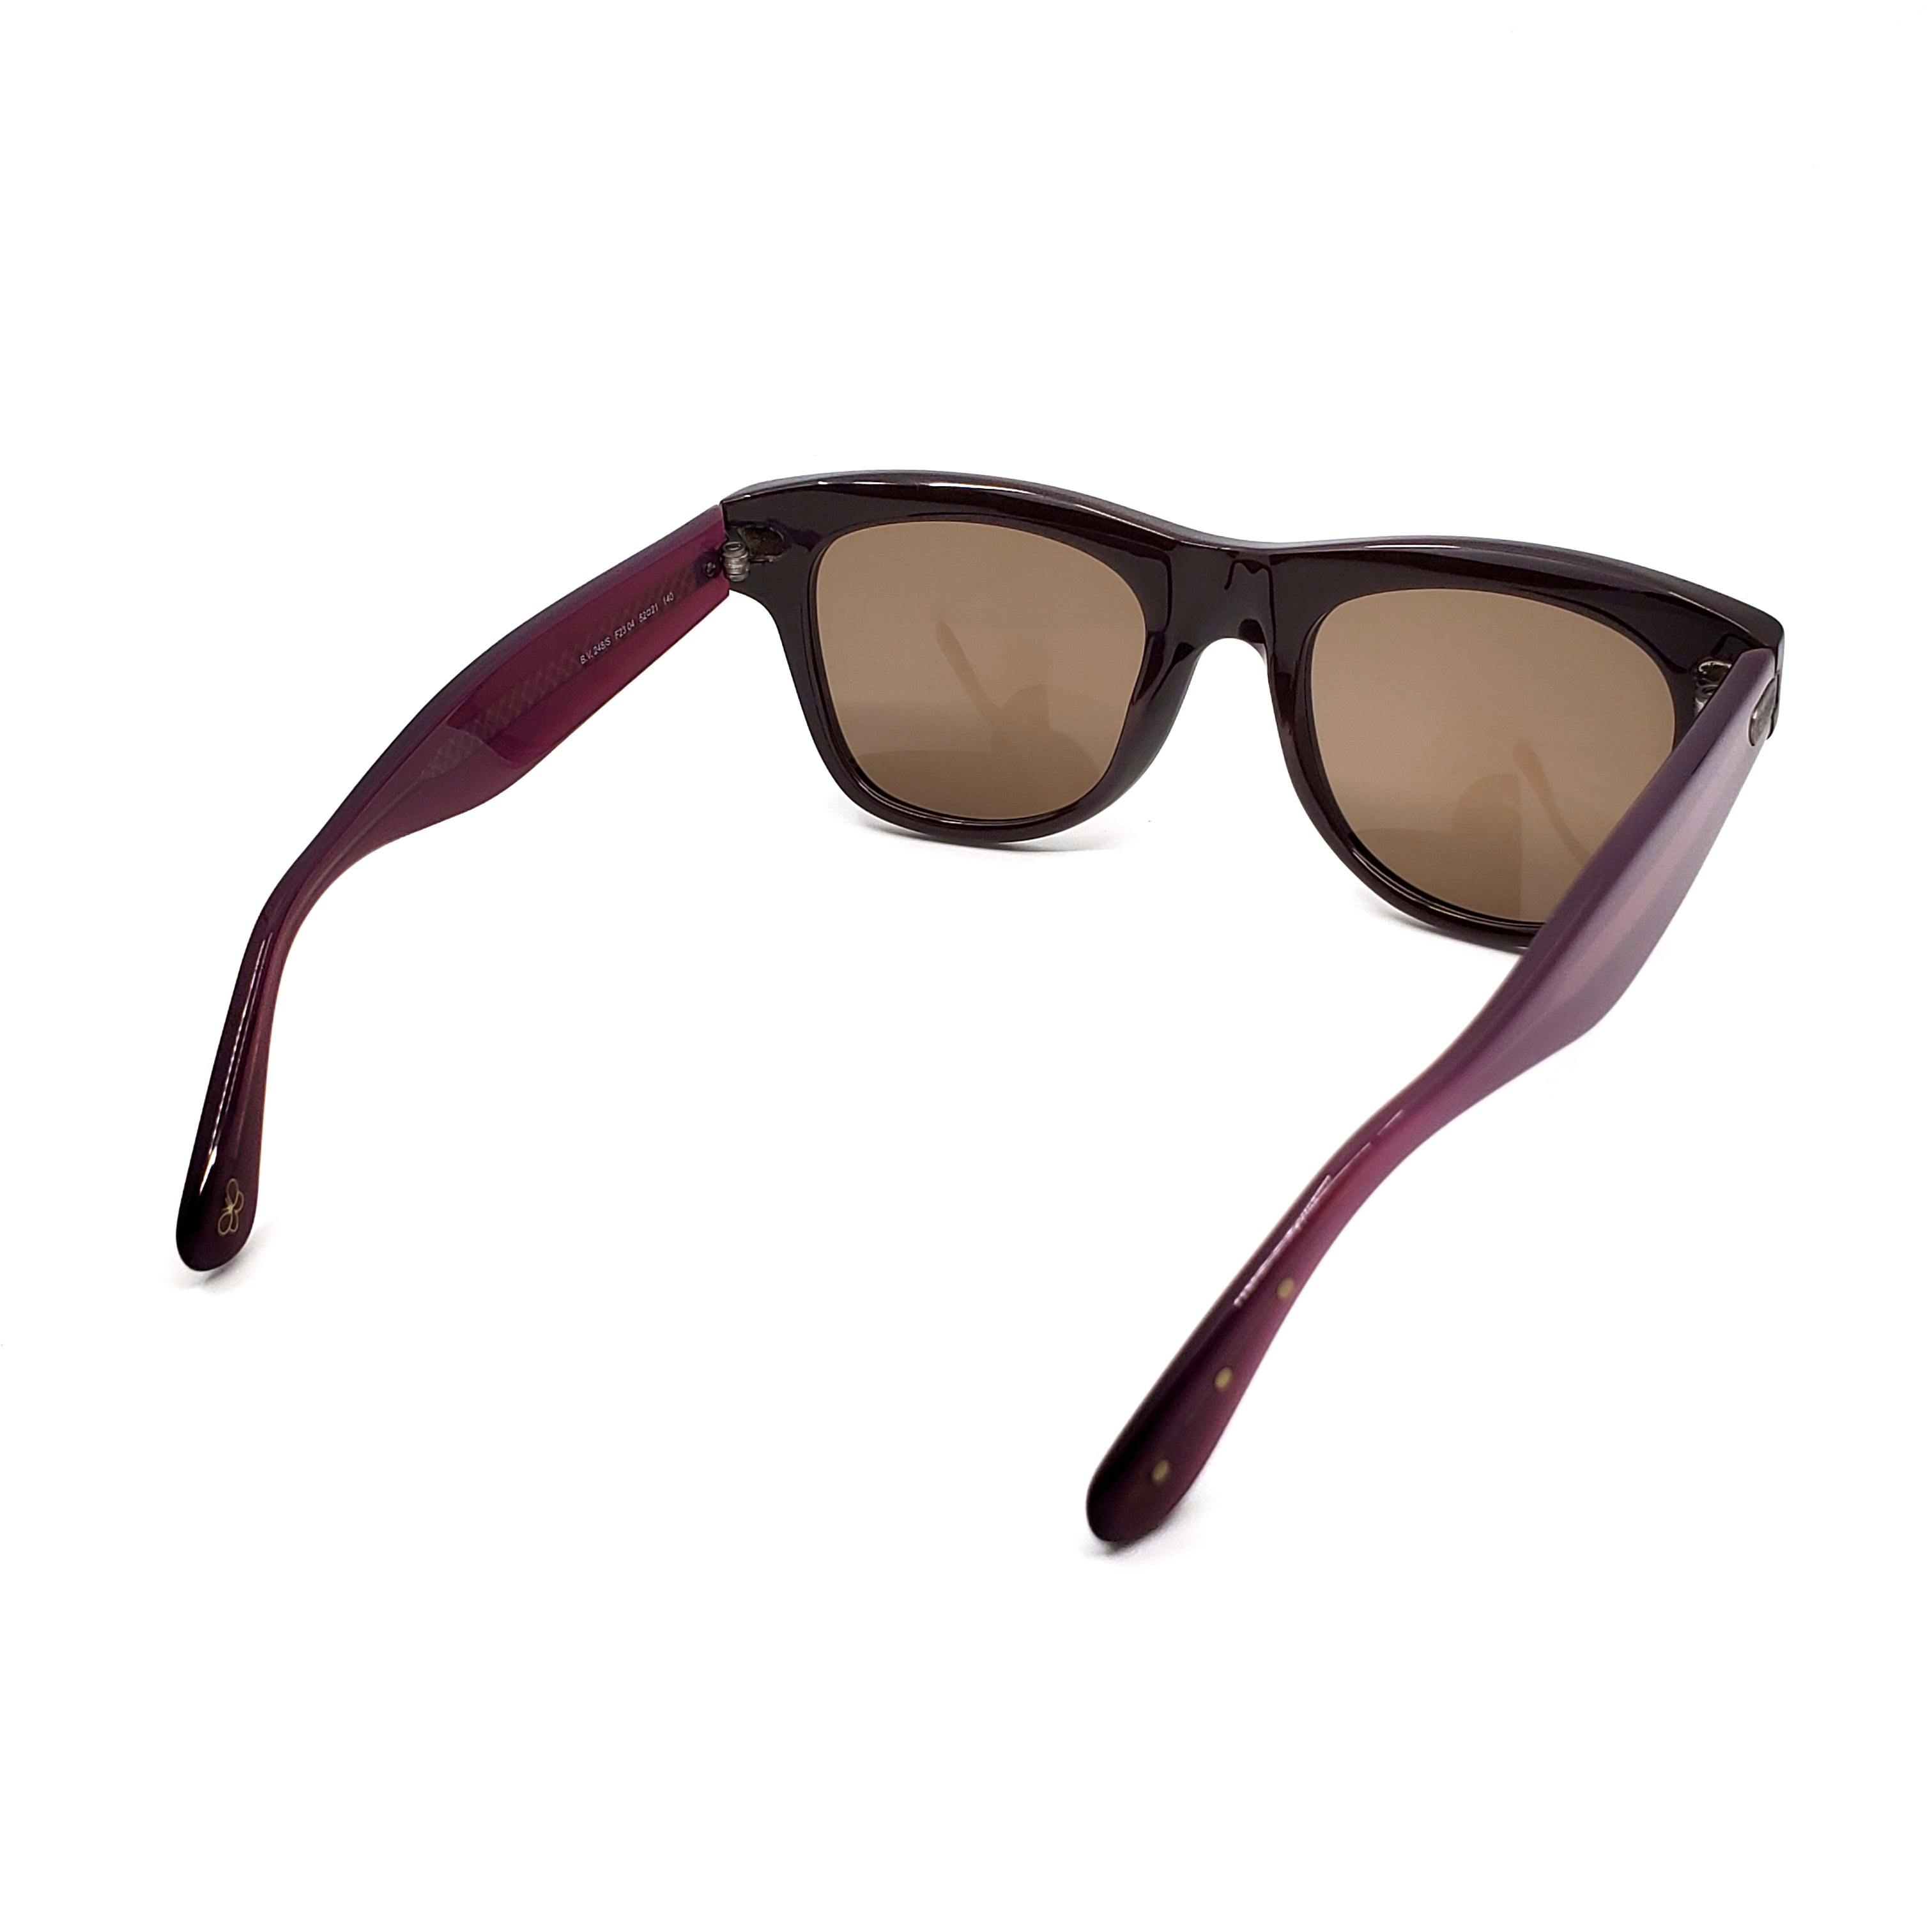 Bottega Veneta Sunglasses - 248S